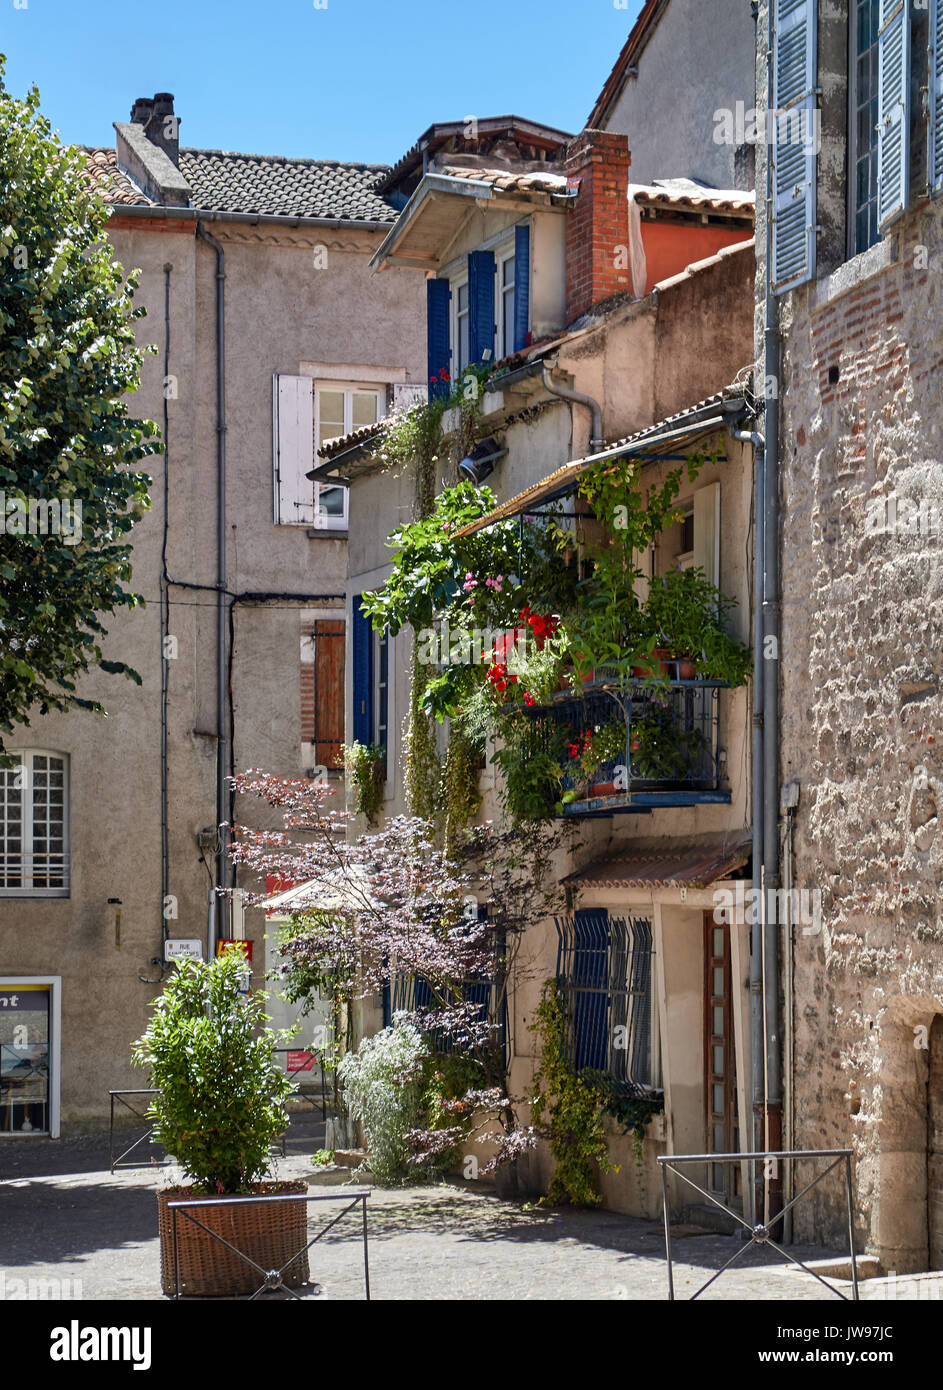 Europe, France, Occitanie, Lot, Cahors city, the old city, timber framed and brick buildings and square in medieval town, Balcony with flowers - Stock Image